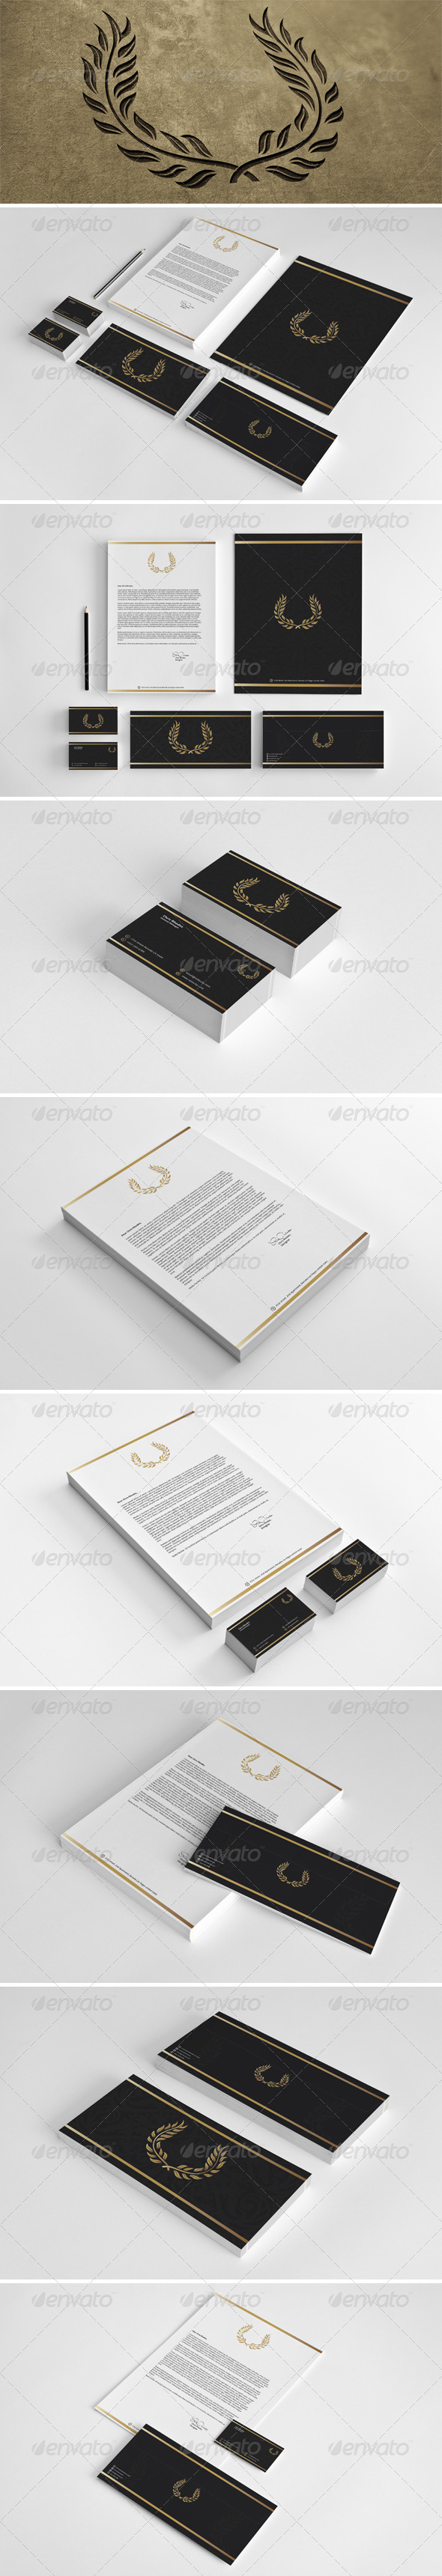 GraphicRiver Gold & Black Corporate Identity 6786553